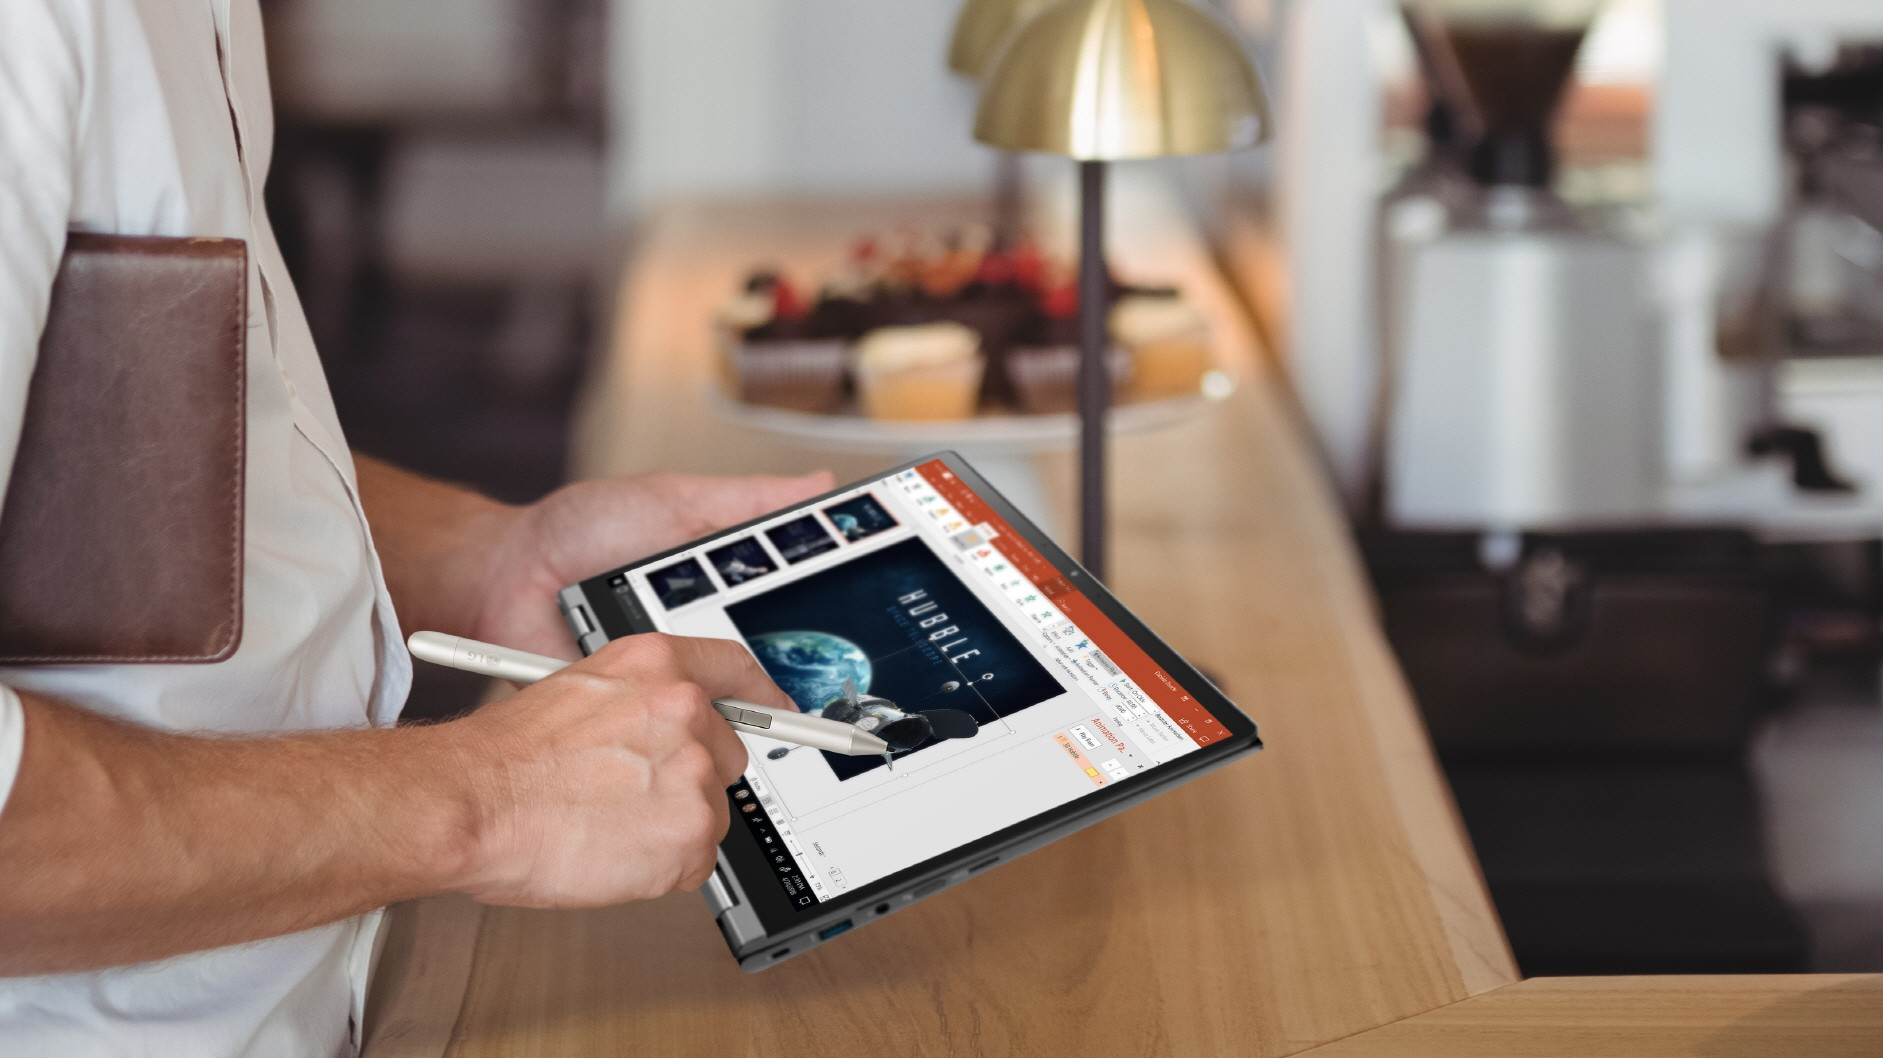 A close-up of a man touching the display of LG gram while making a presentation for work